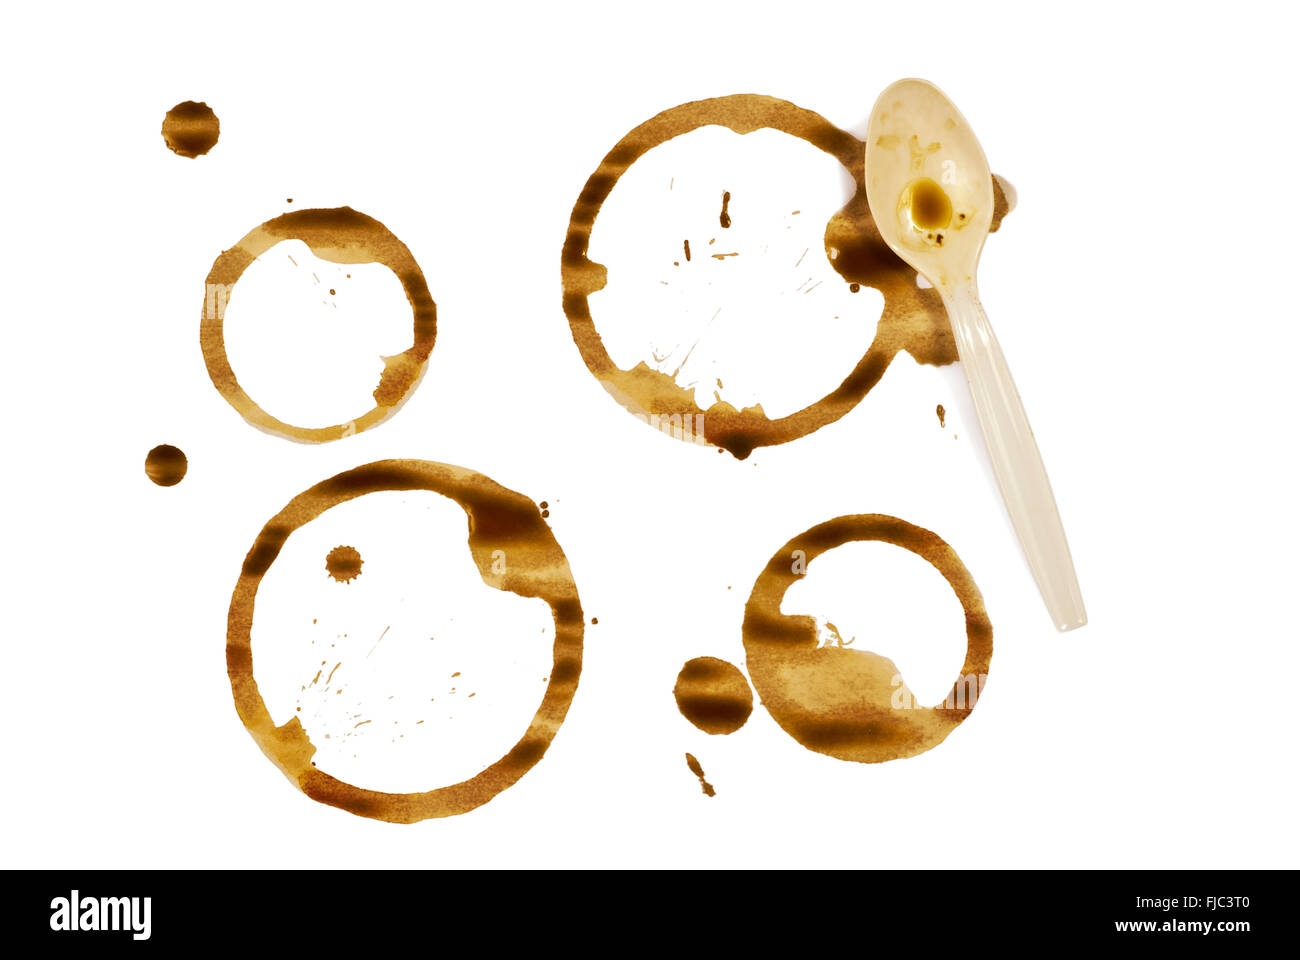 Coffee Cup Stains With Plastic Spoon - Stock Image